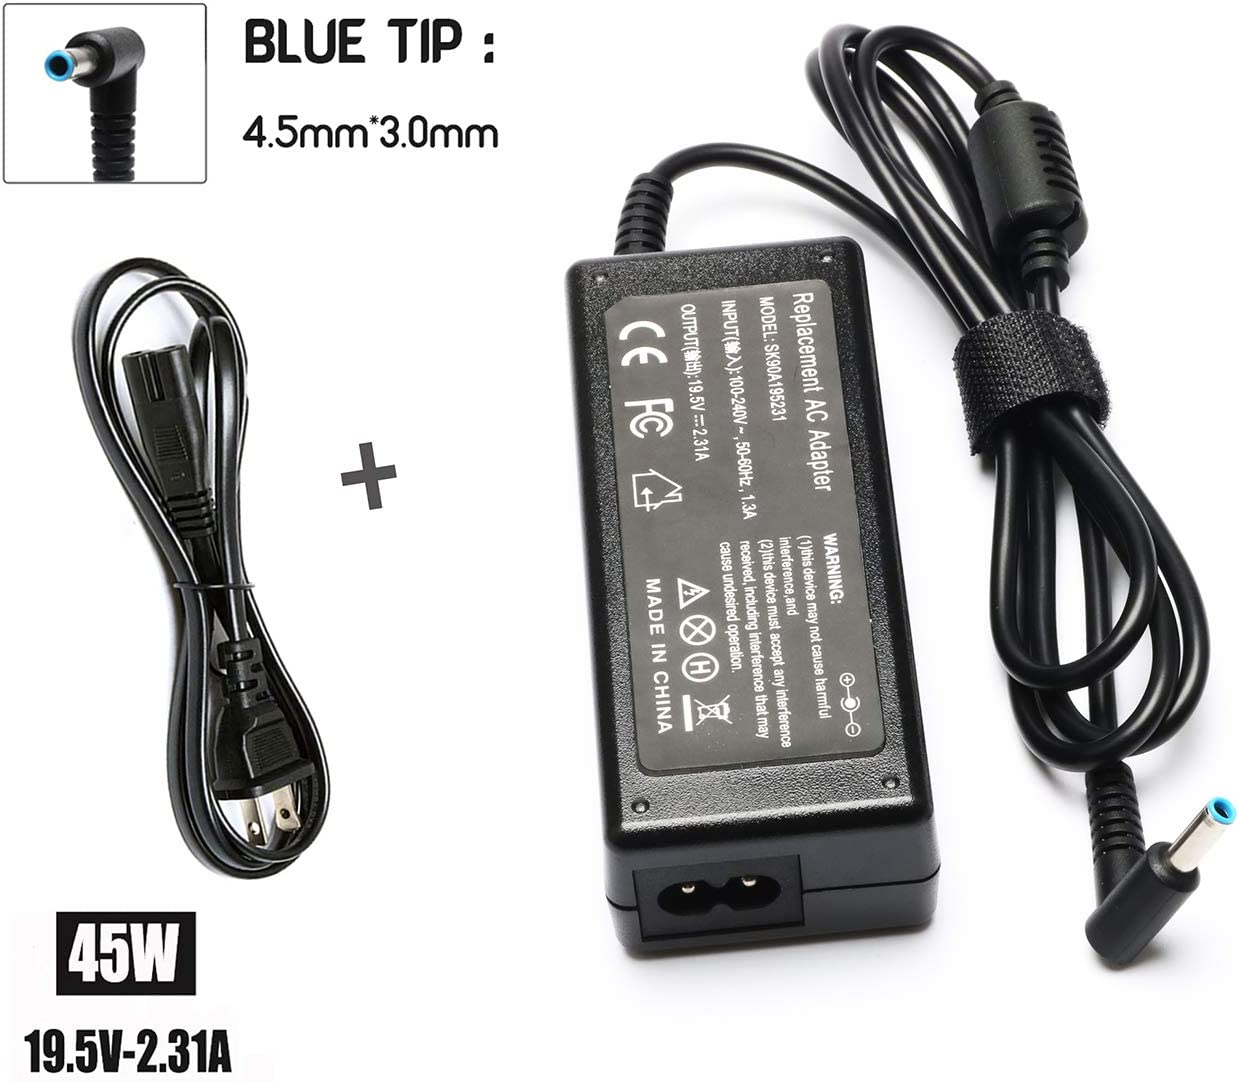 19V 2.31A 45W Ac Adapter/Power Cord Supply for Hp Stream 11 13 14; Hp Pavilion X2 11 13 15; P/N: 719309-001 719309-003 721092-001 741727-001 740015-001 HSTNN-CA40 ADP-45WD B